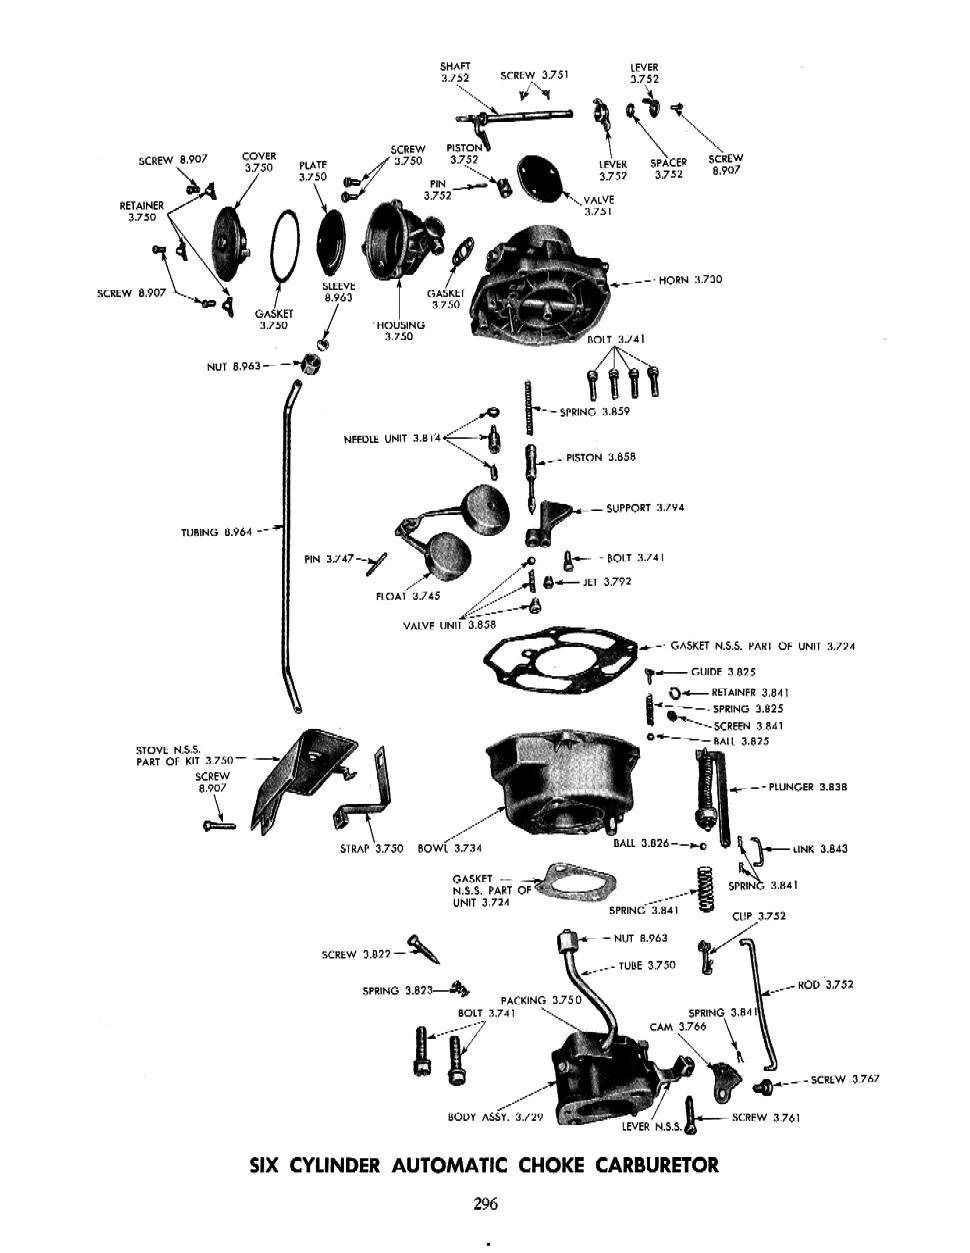 Dodge Challenger 440 Magnum likewise Chrysler Accessories Catalog in addition Oem Chevy Parts Online additionally Ford Escort Cv Axle Installation likewise Chevy Car Parts Catalog. on jeep oem parts online catalog html